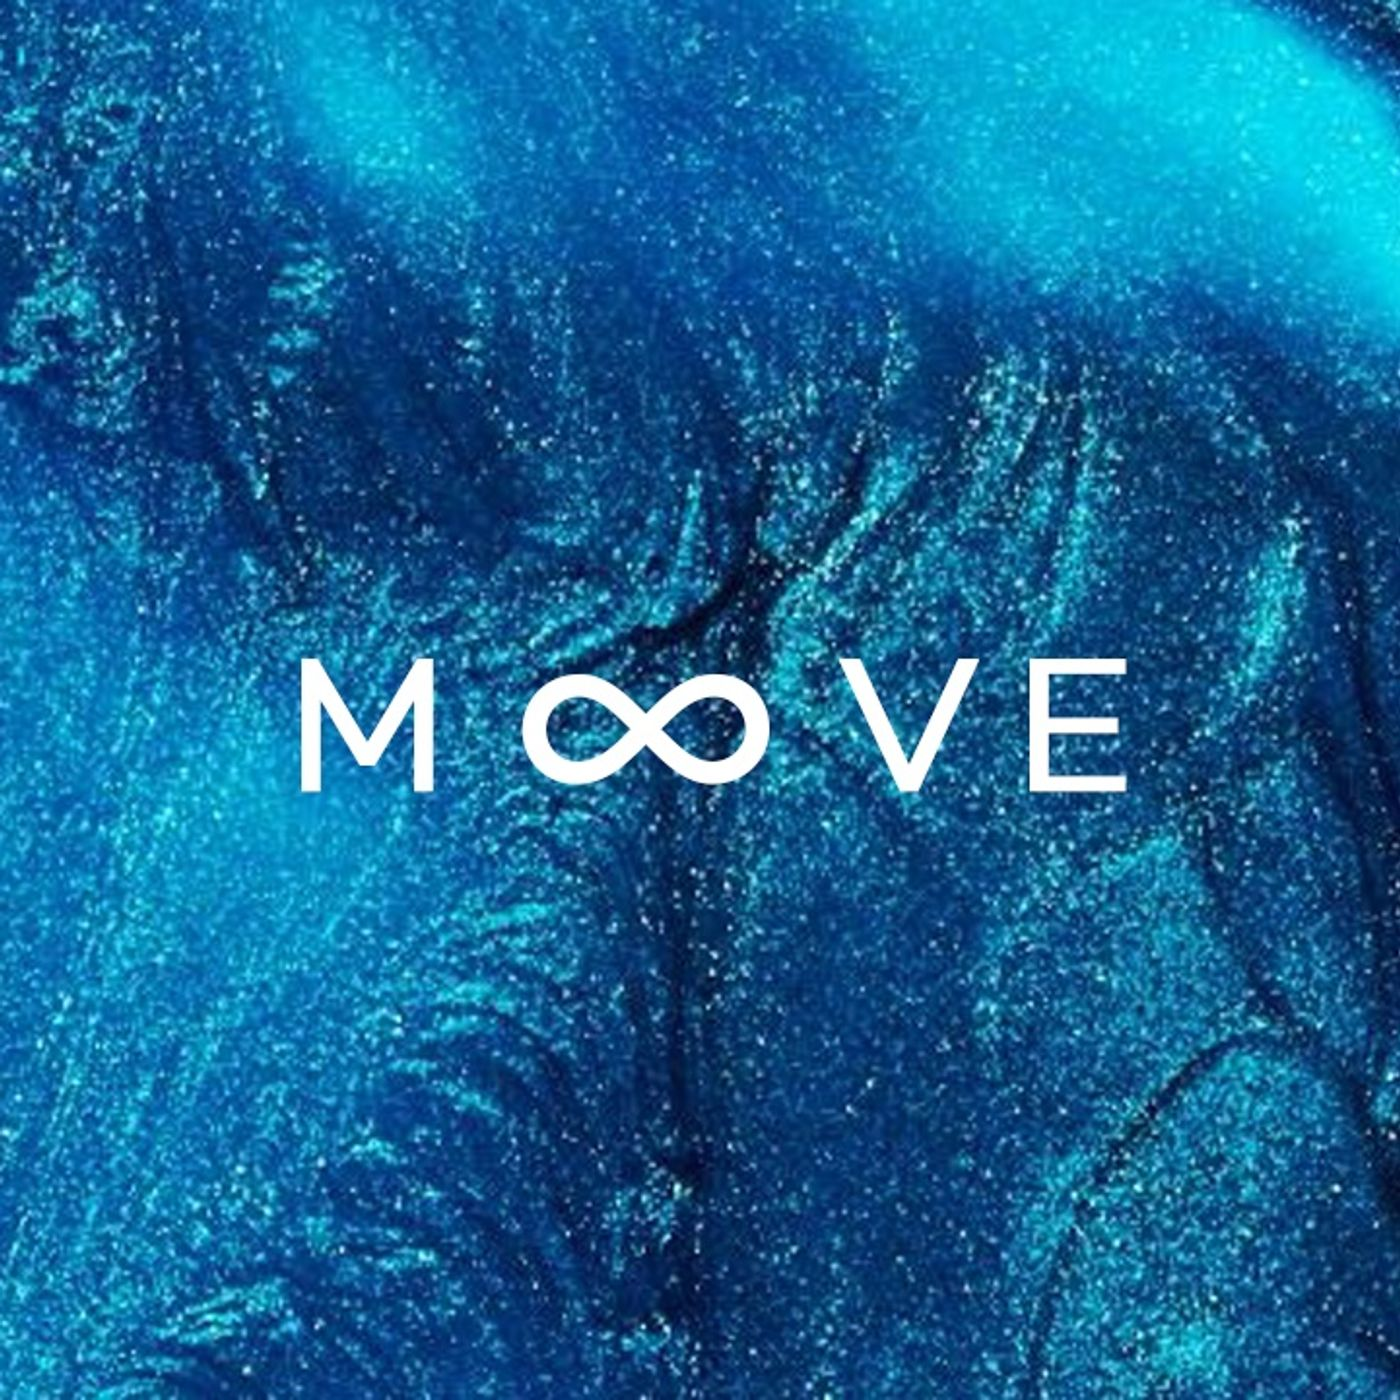 The Moove Podcast